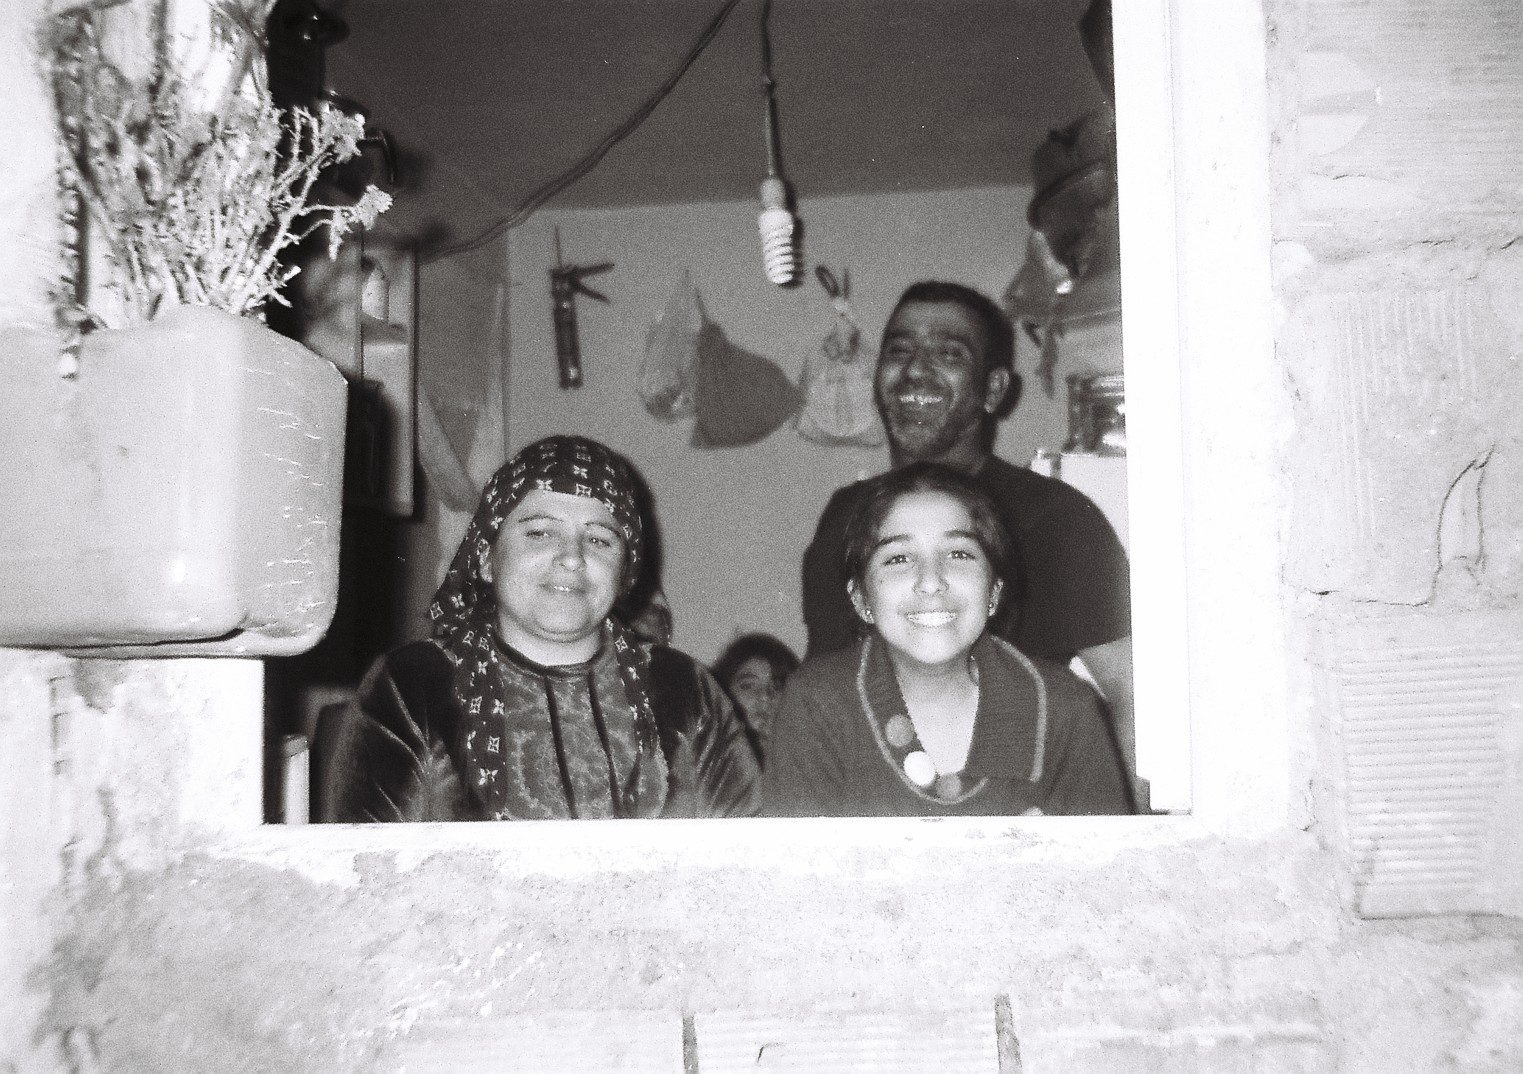 Photo taken by Sevin she is 14 years old from Qamishlo Syria ( Capturing her friend and her family)